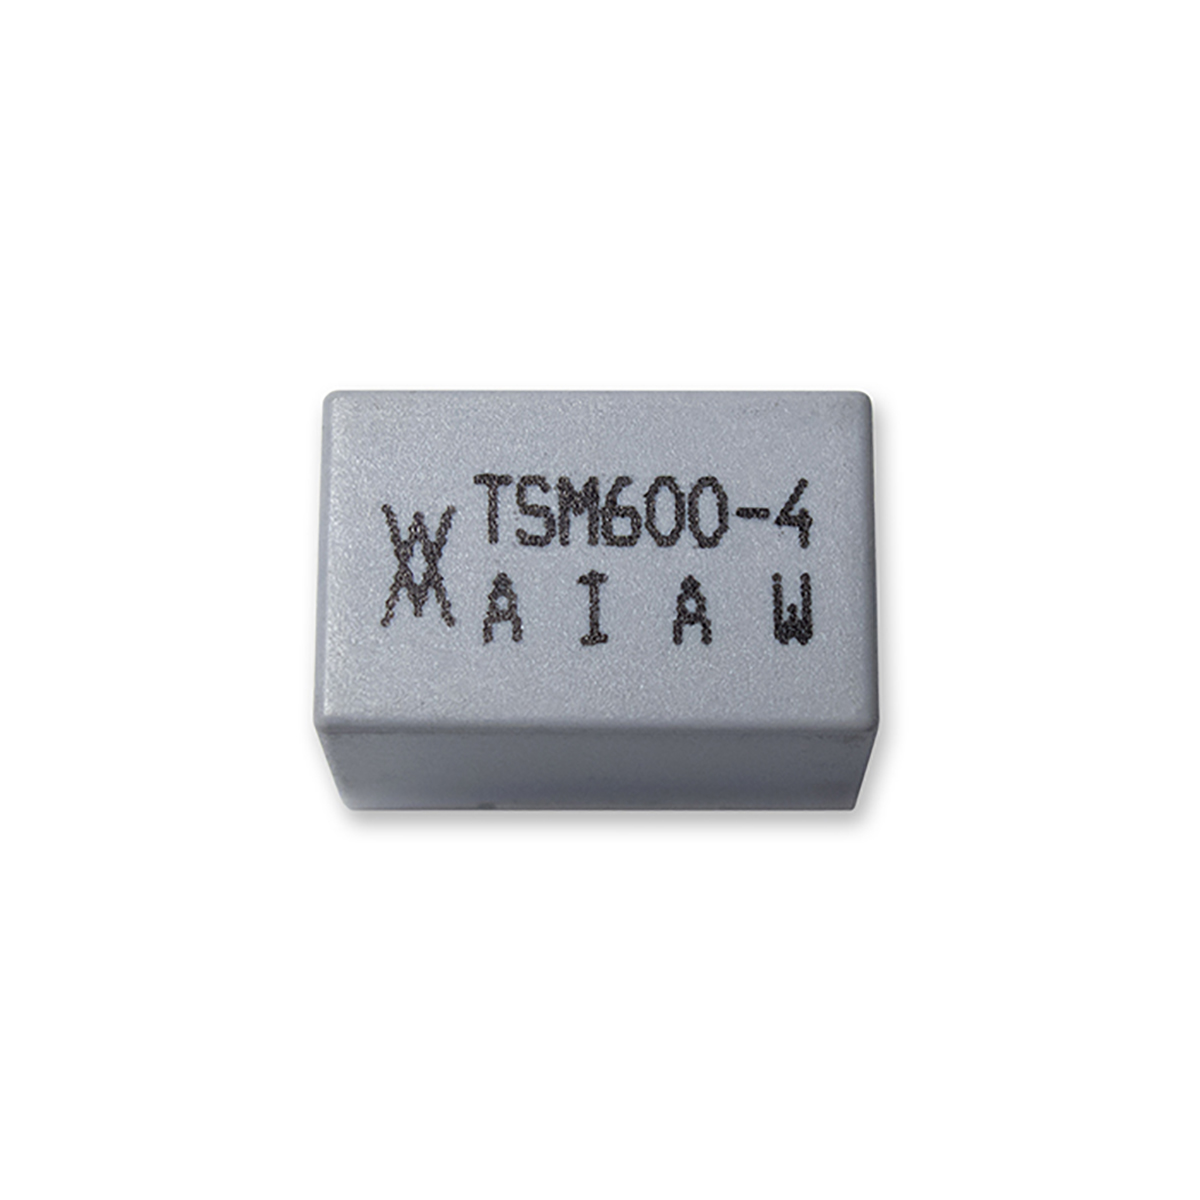 Polyswitch Telecom Resettable Ptcs High Voltage Power Protection Anlittlefusecircuitprotectionliionlipoly Tsm600